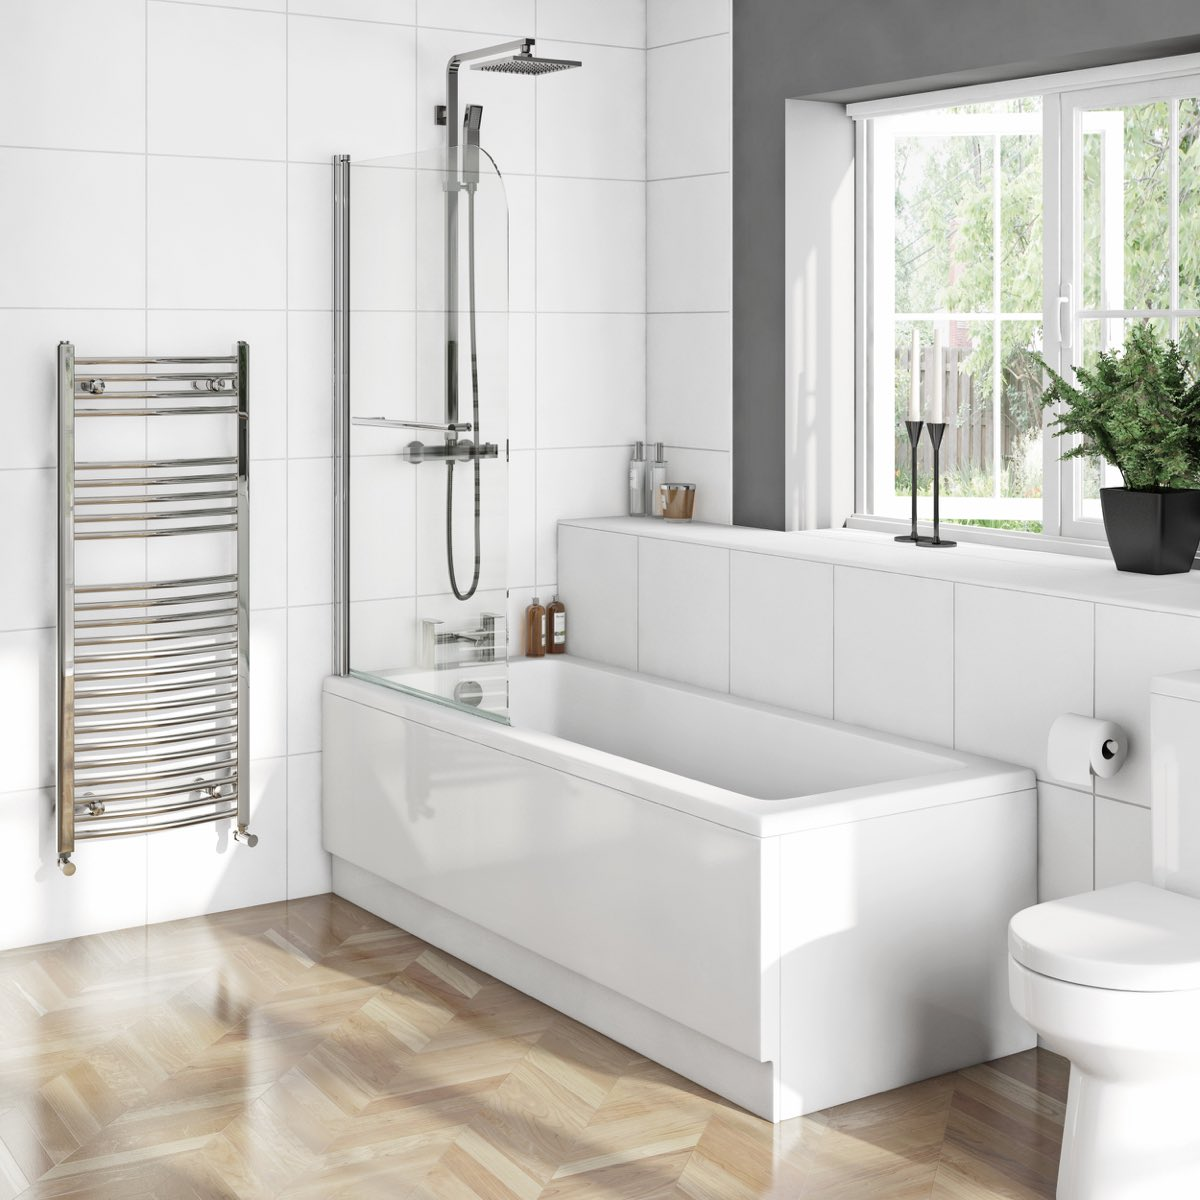 Kensington bath with single shower screen